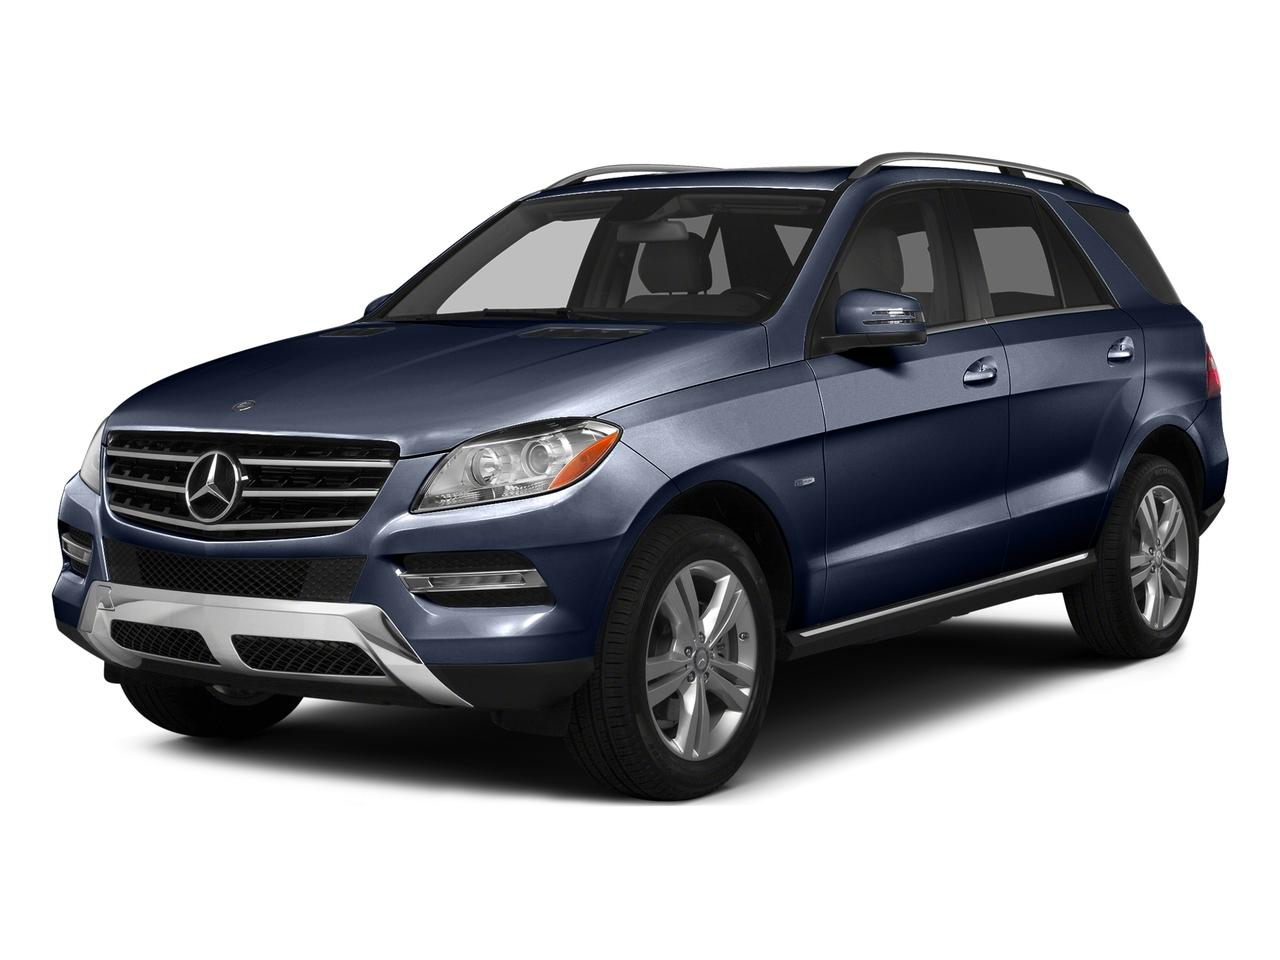 2015 Mercedes-Benz M-Class Vehicle Photo in Beaufort, SC 29906